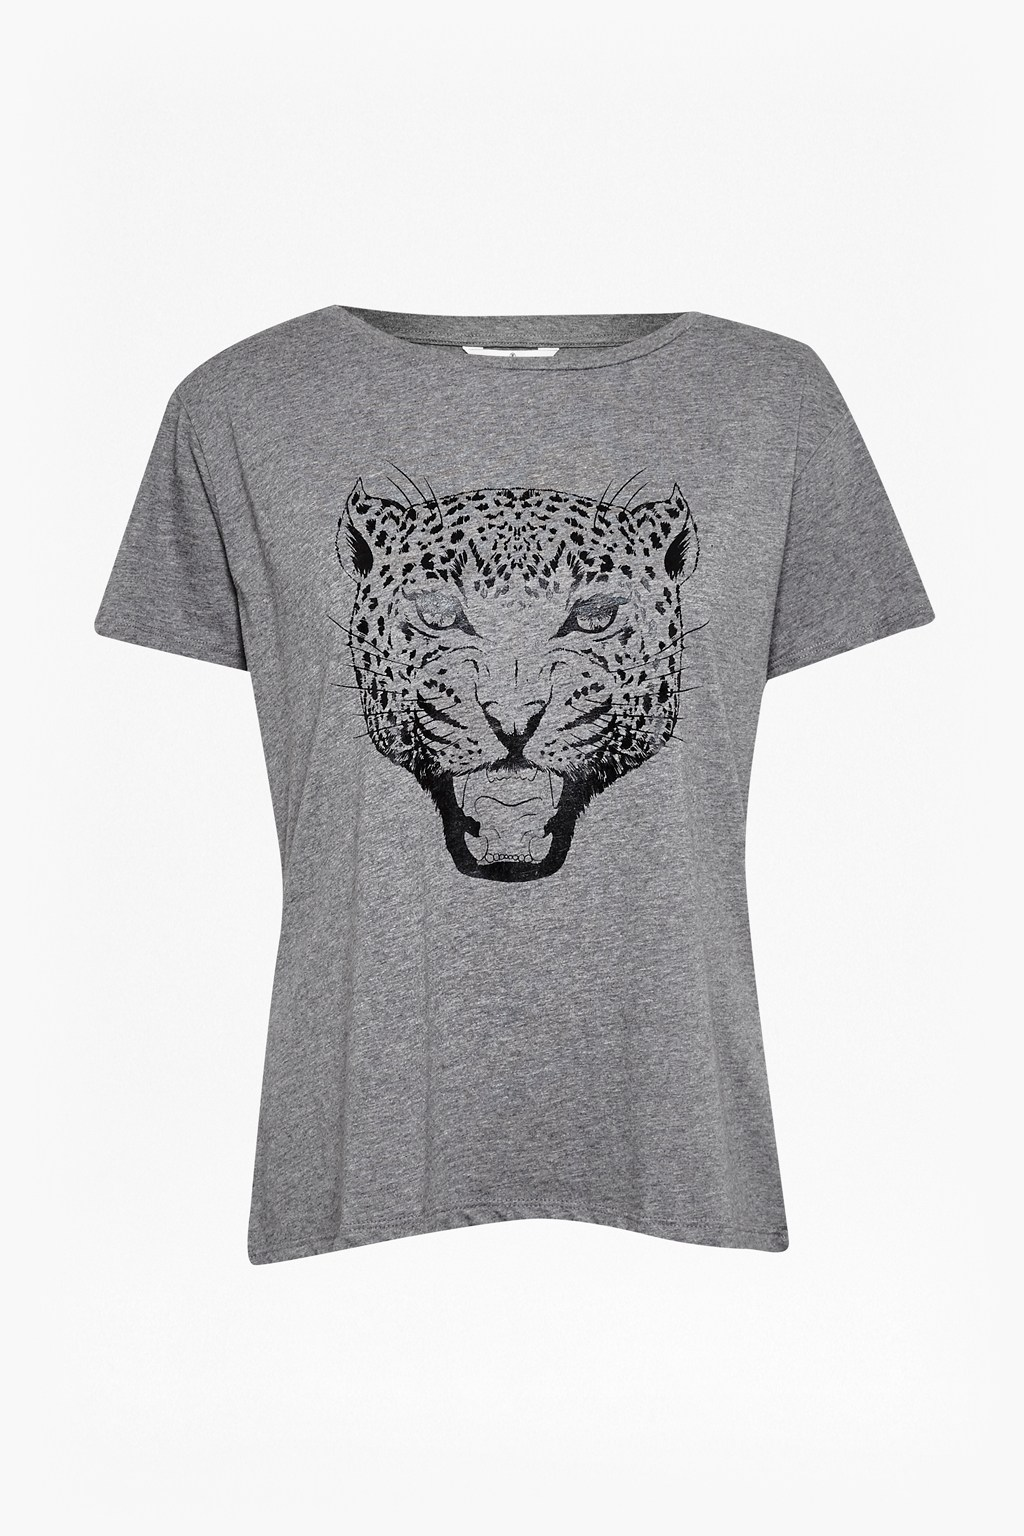 Royal Leopard T Shirt Collections